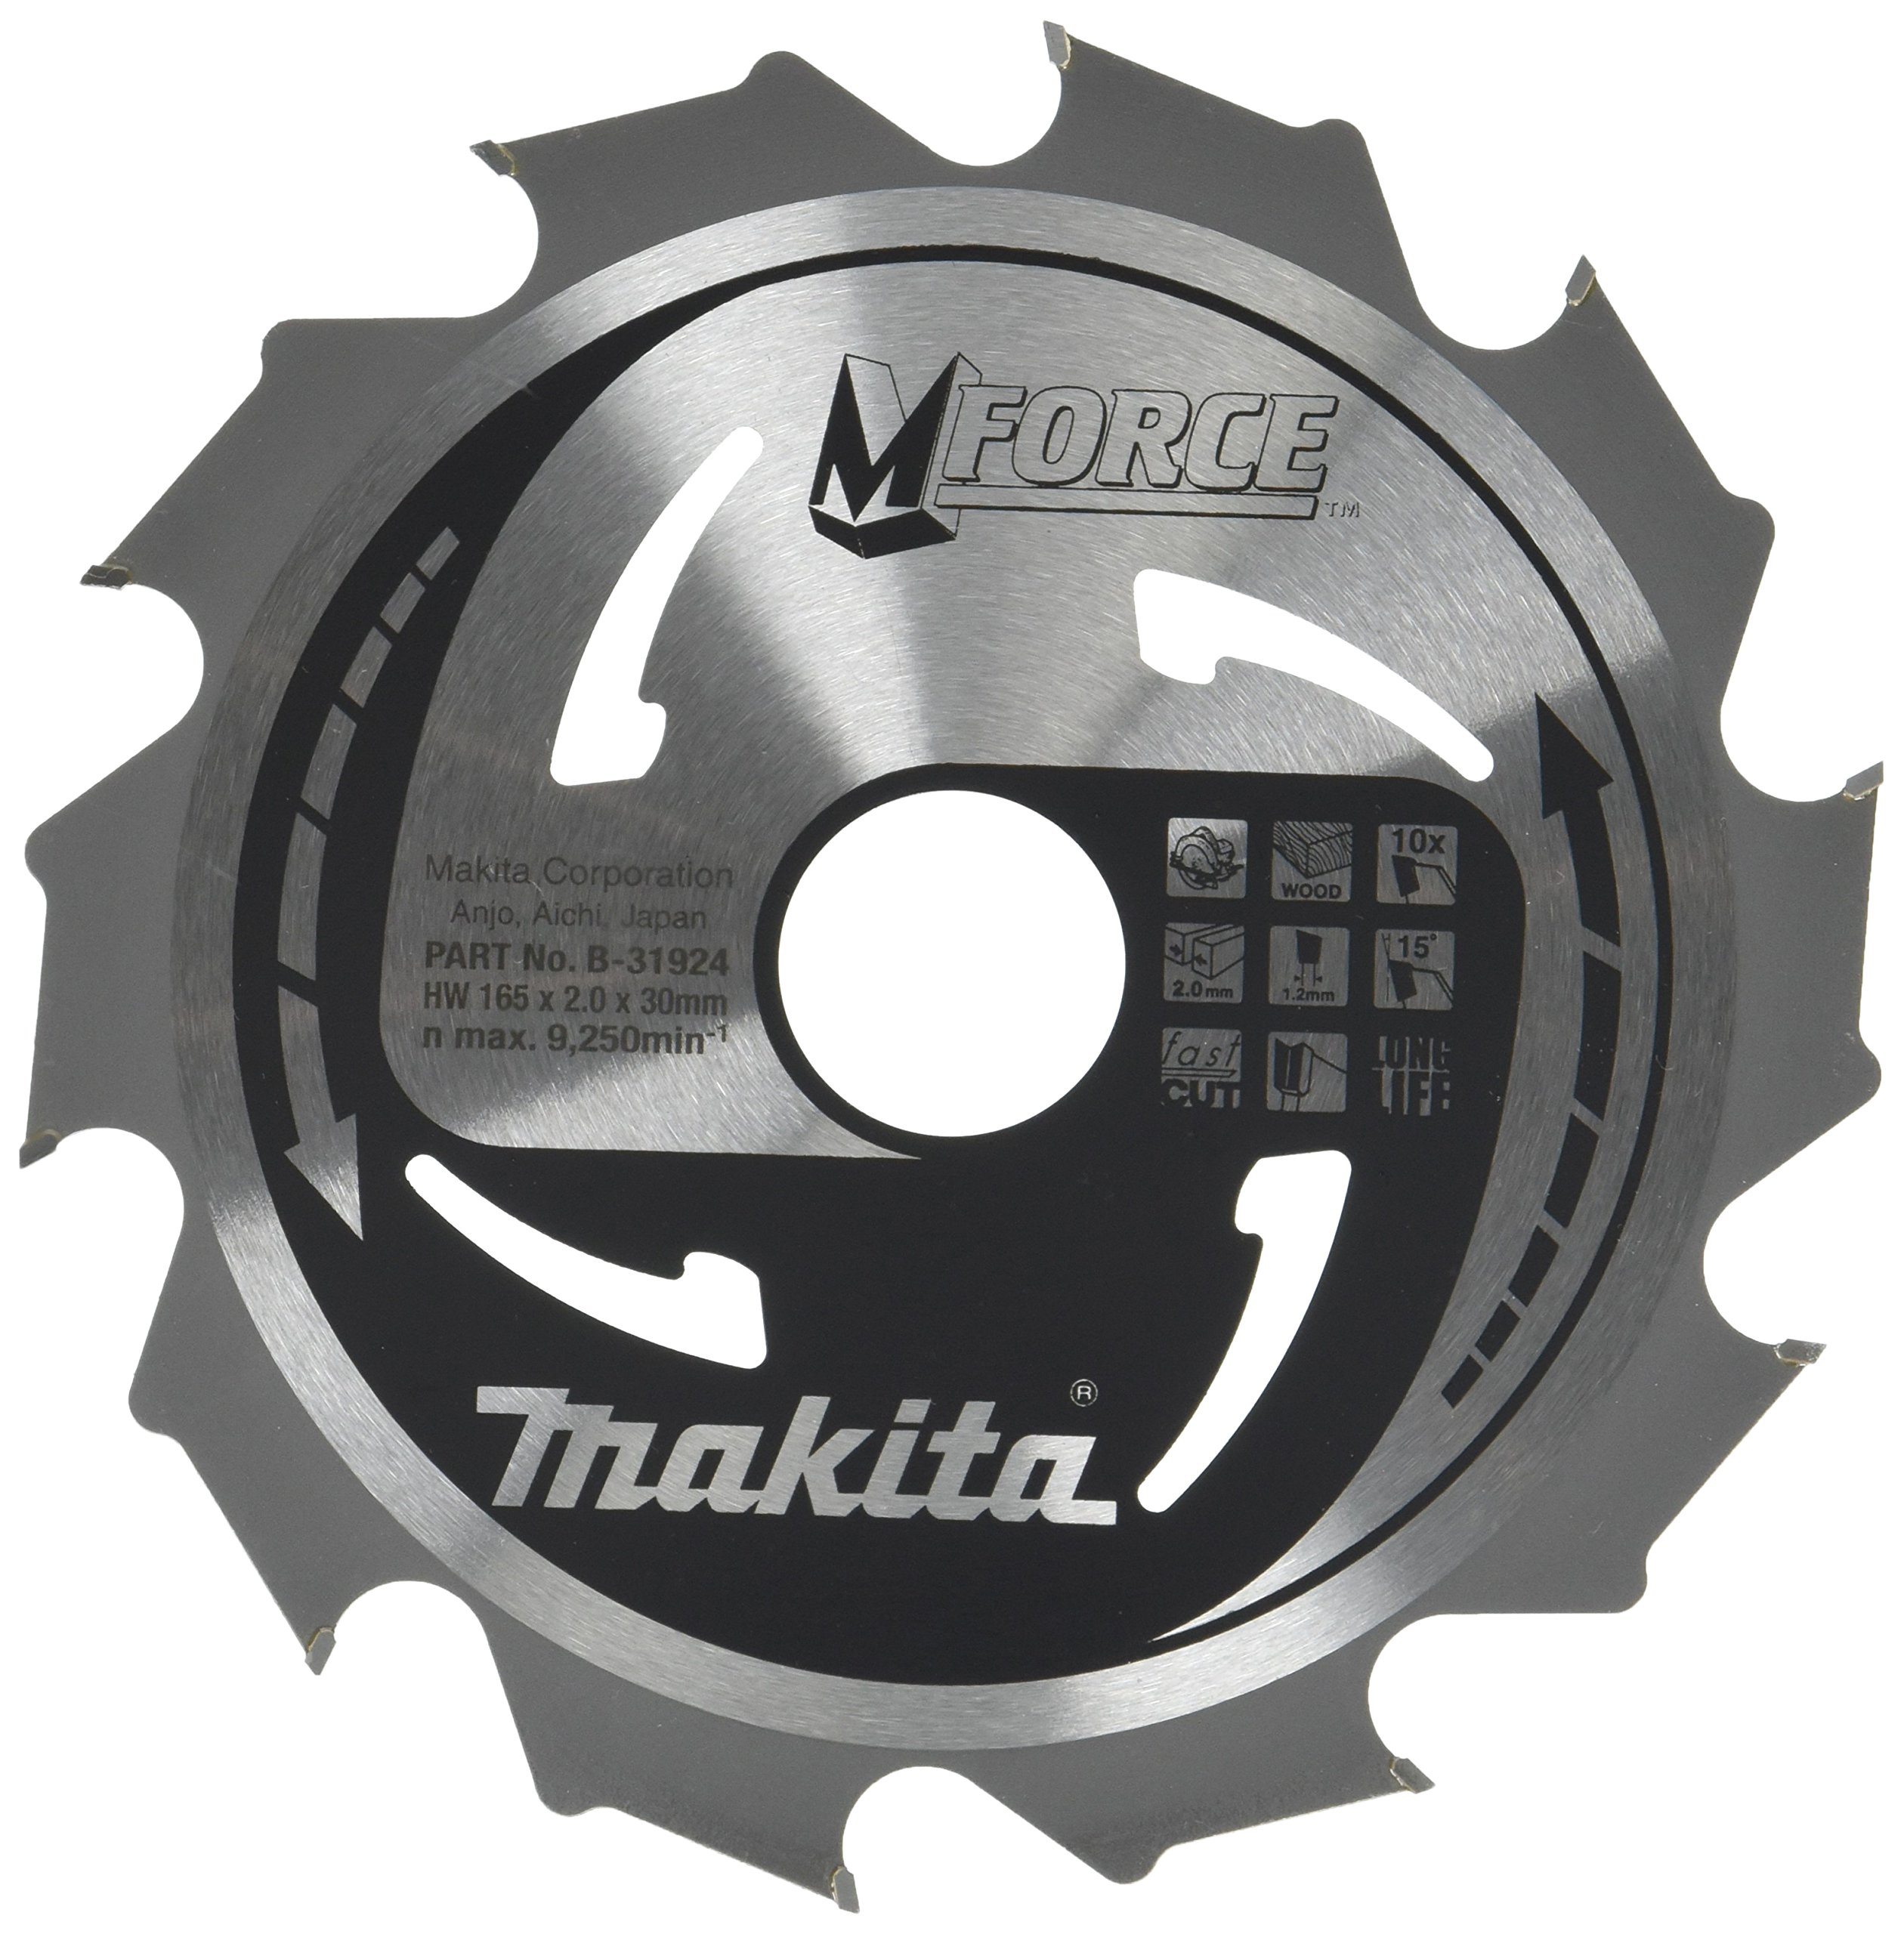 B-31924 M-Force Saw Blade 6.5inx30mm 10Teeth by Makita (Image #1)